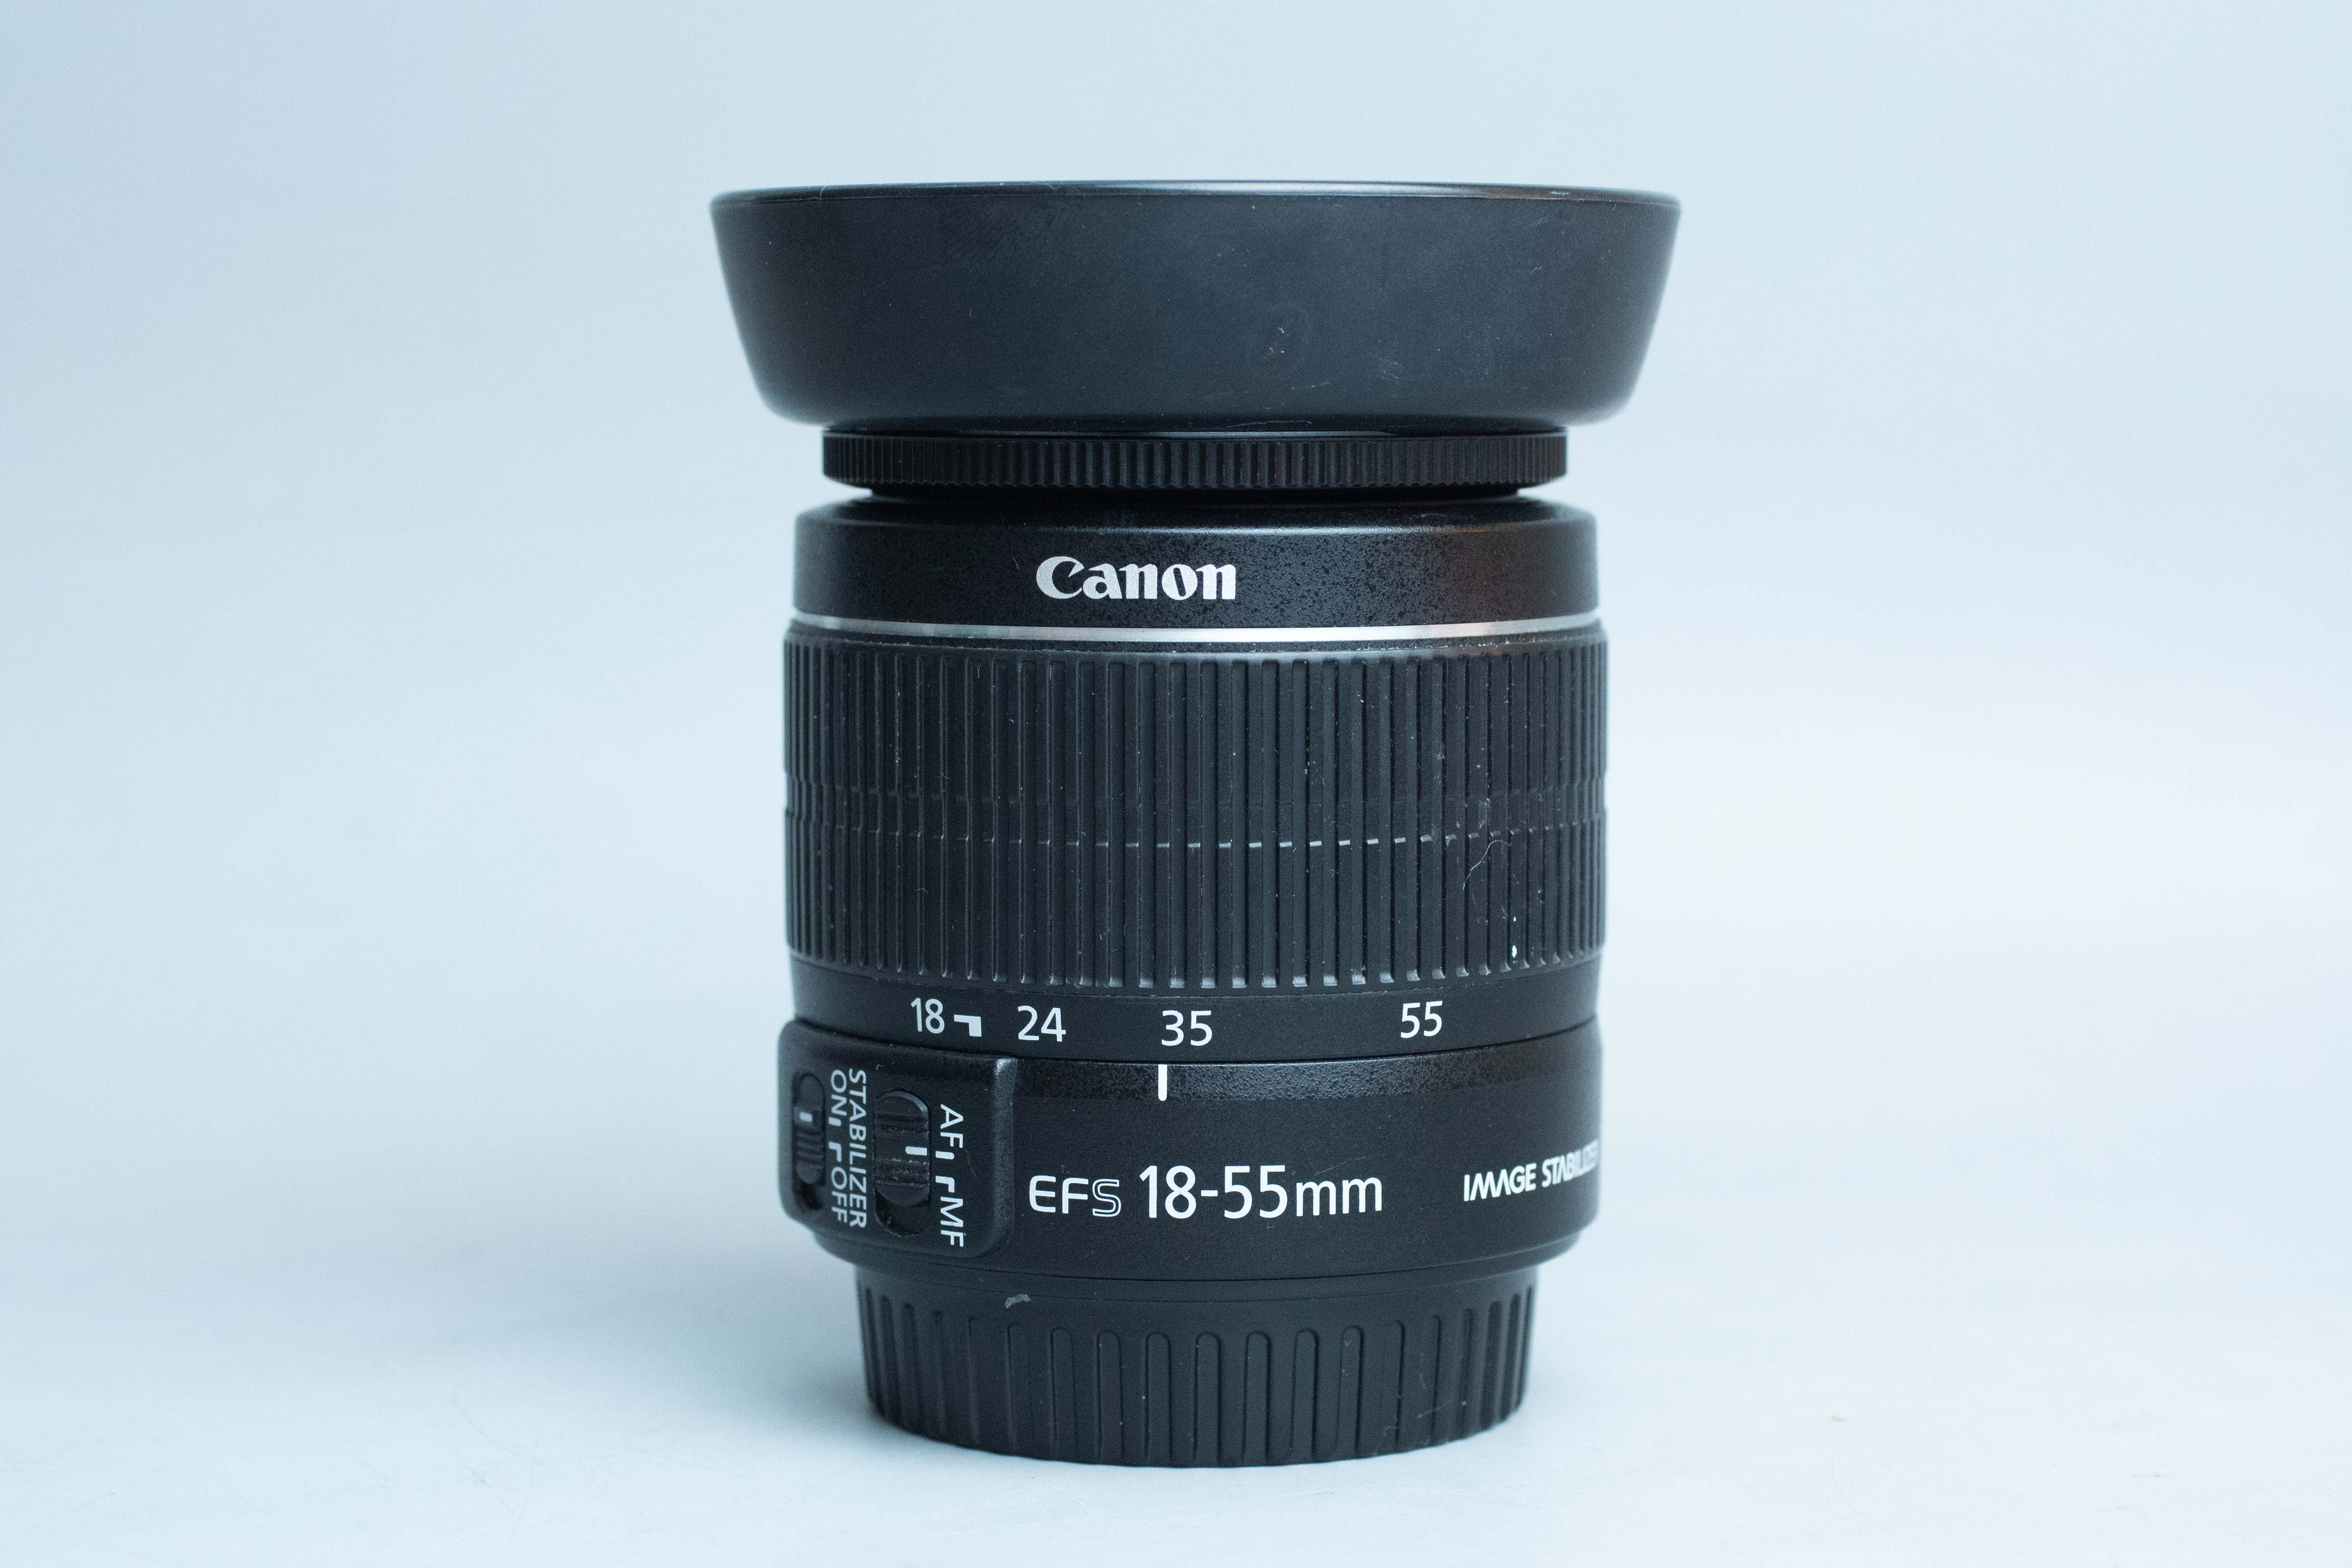 canon-ef-s-18-55mm-f3-5-5-6-is-ii-af-canon-18-55-3-5-5-6-17845